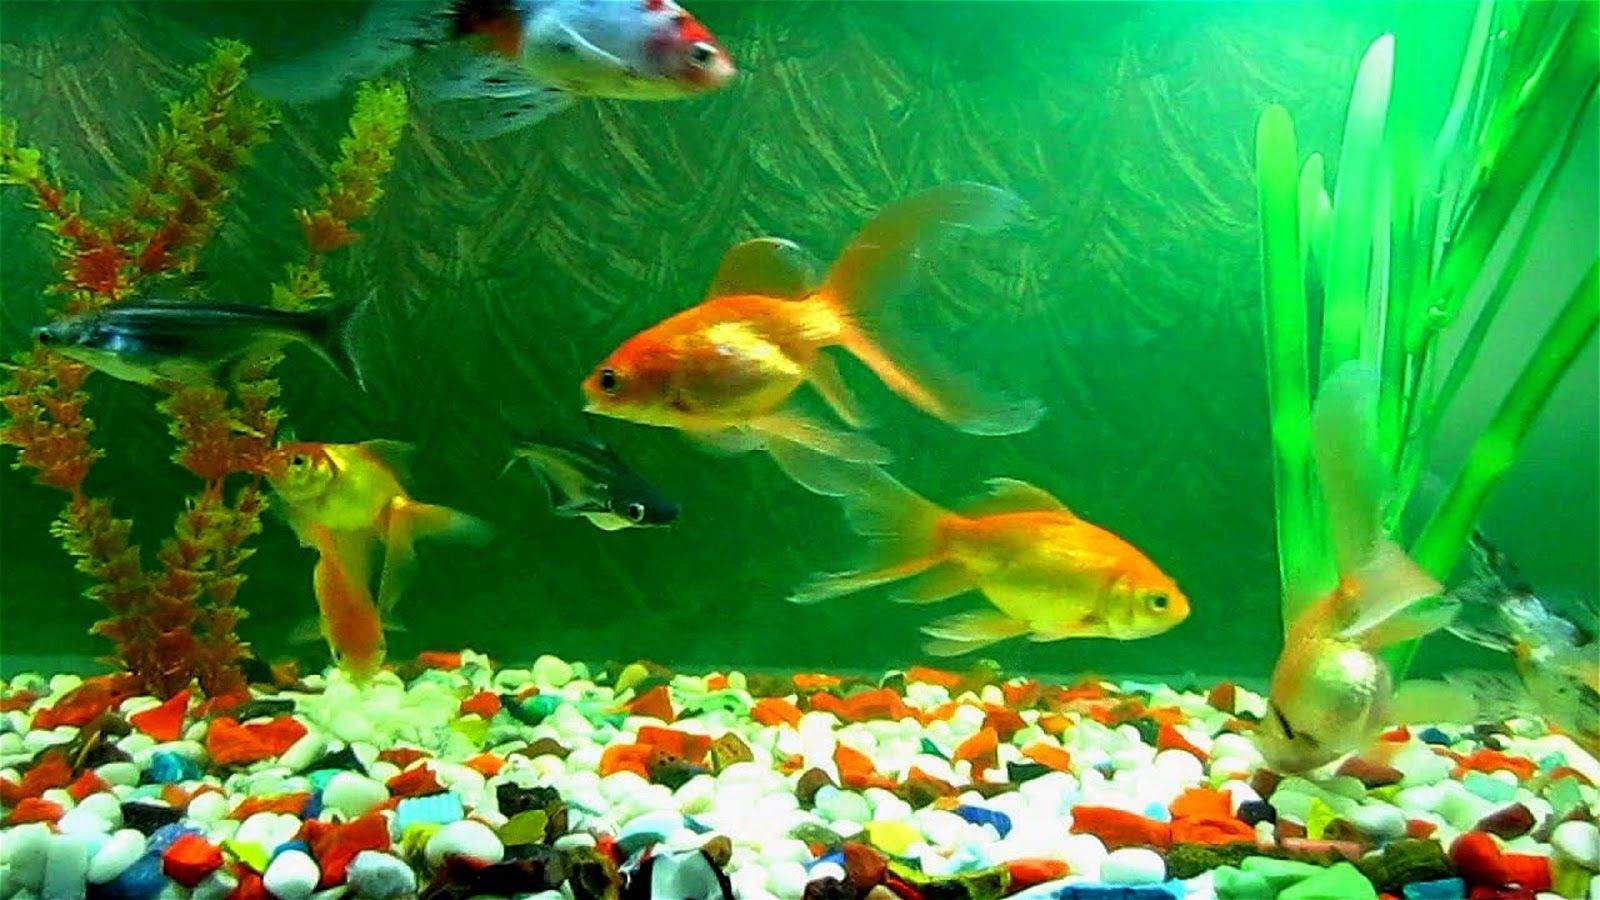 Get Free Aquariums Live Wallpaper Google Playstore Click Here To Download Apps Https Play Go Aquarium Live Wallpaper Aquarium Backgrounds Fish Wallpaper